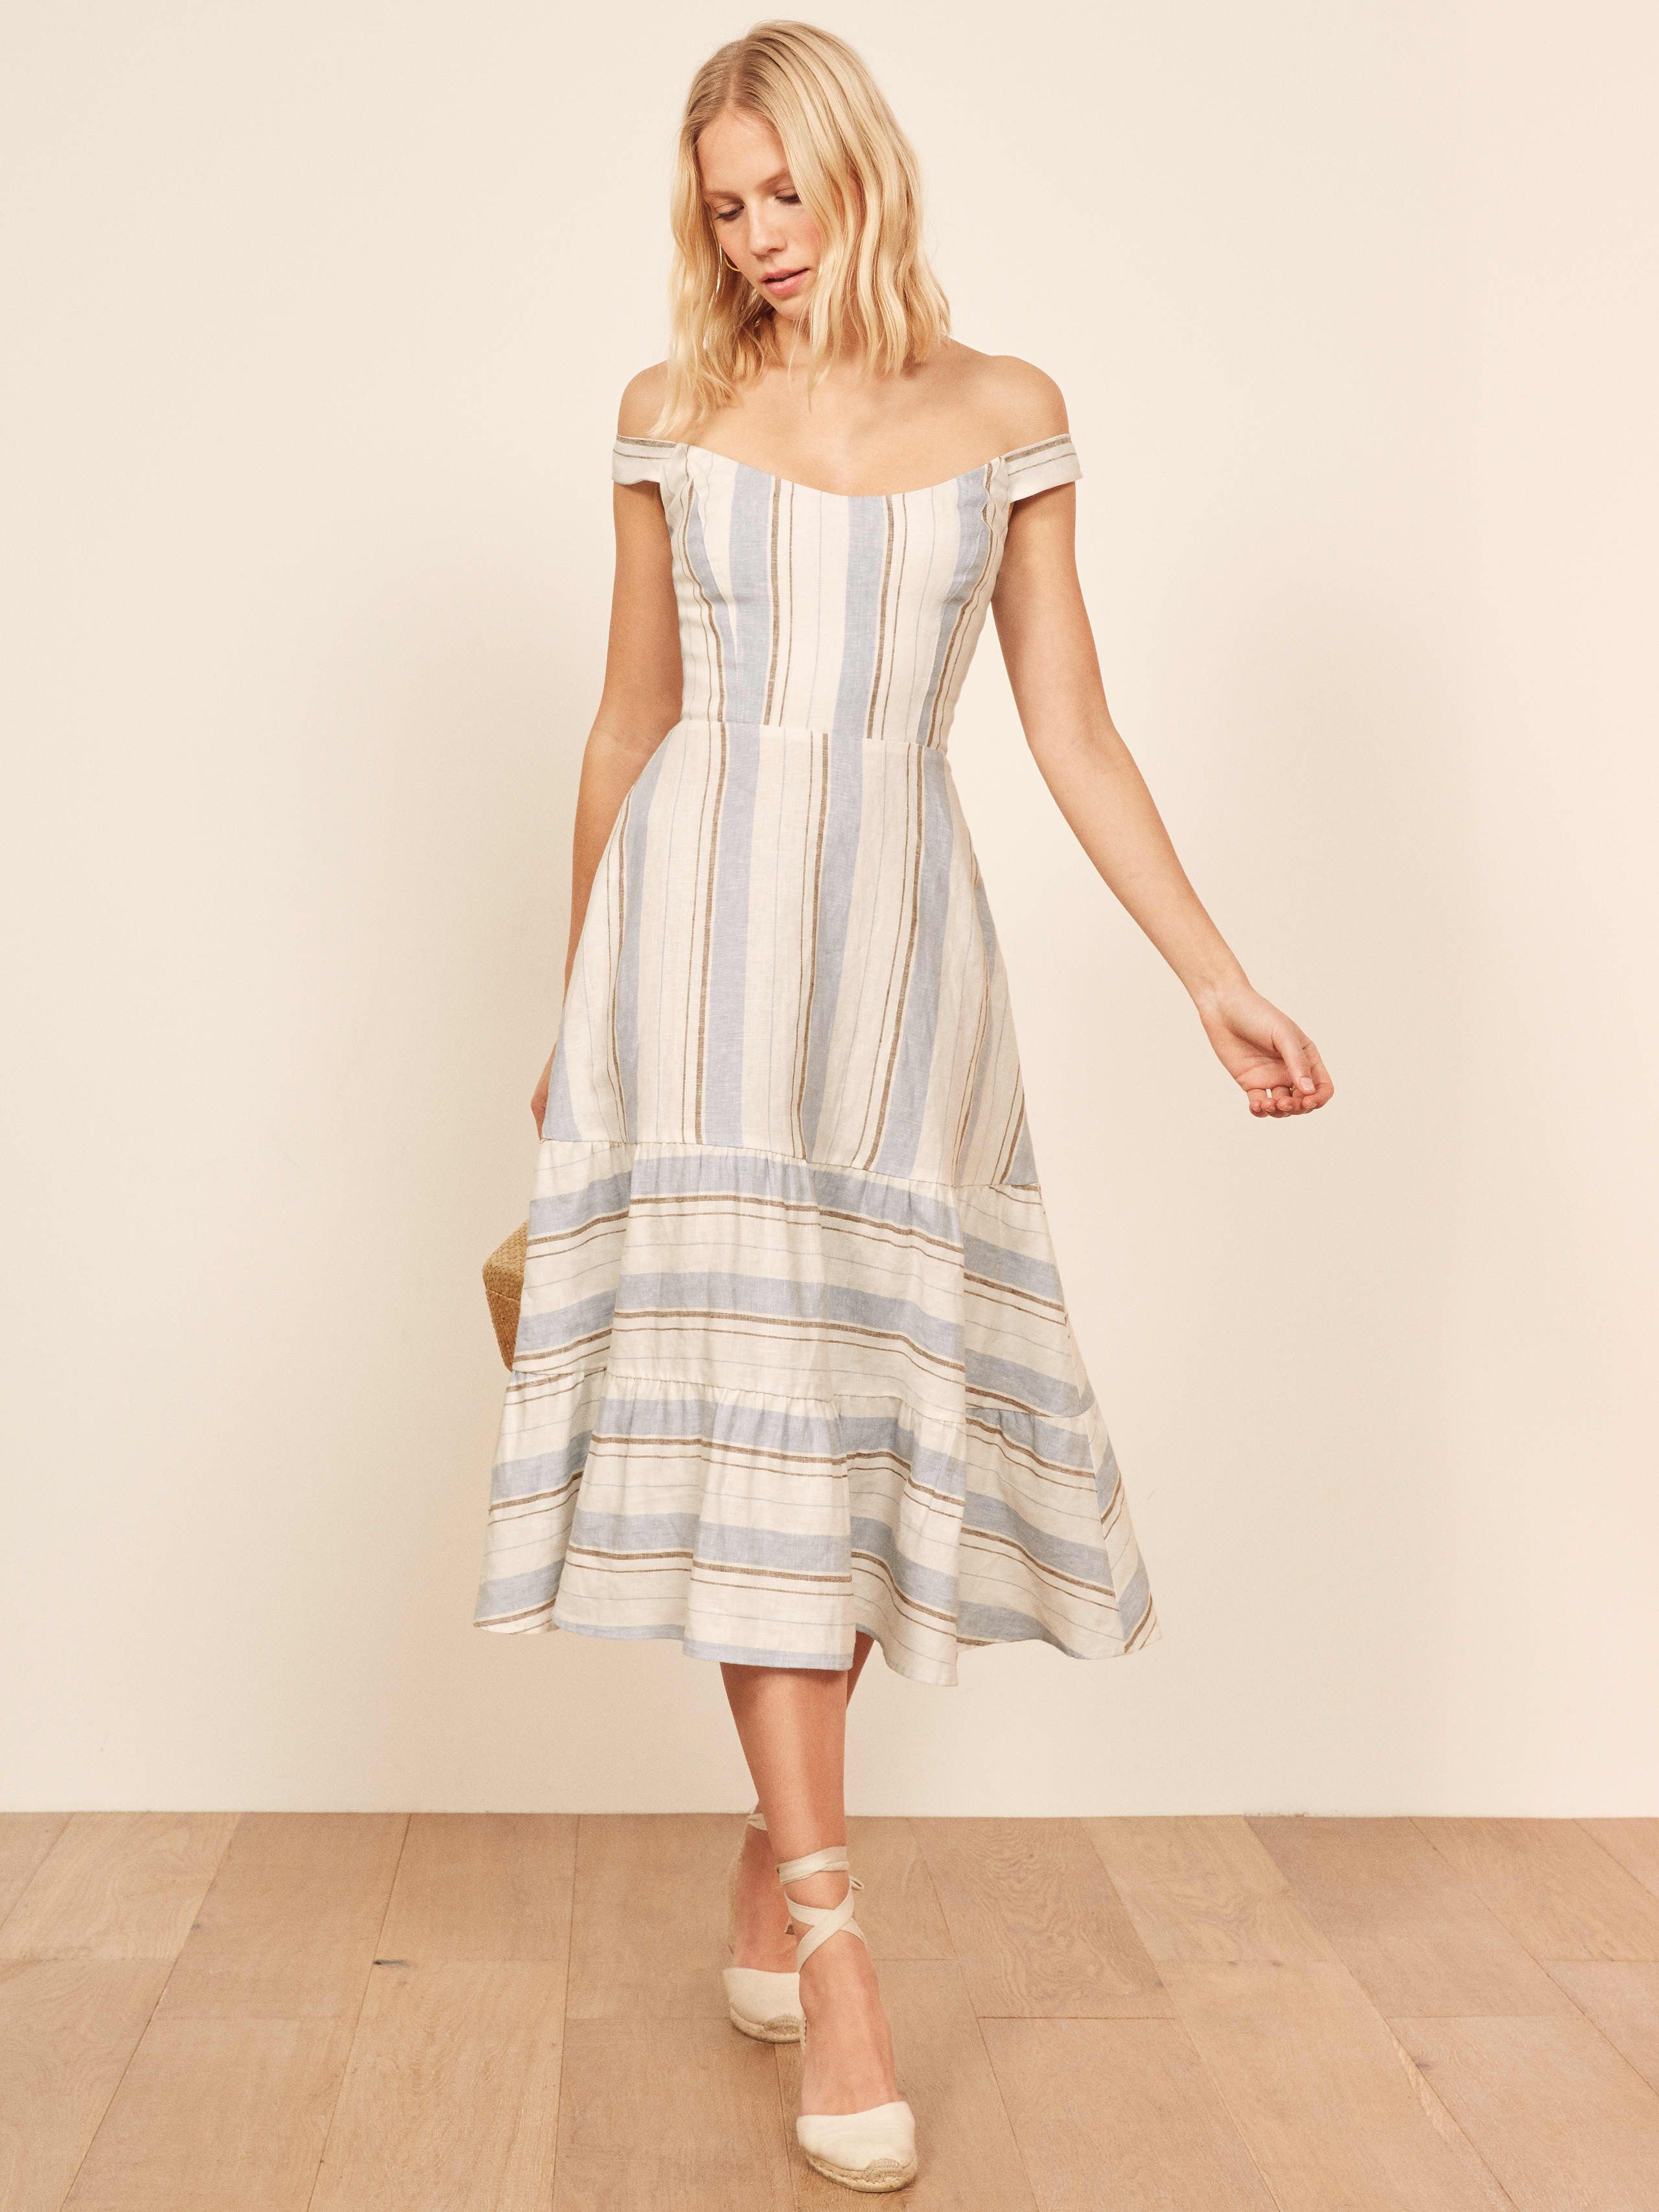 697bbc49948 10 Cute Spring Dresses 2019 - Casual and Chic Dresses to Wear in Spring